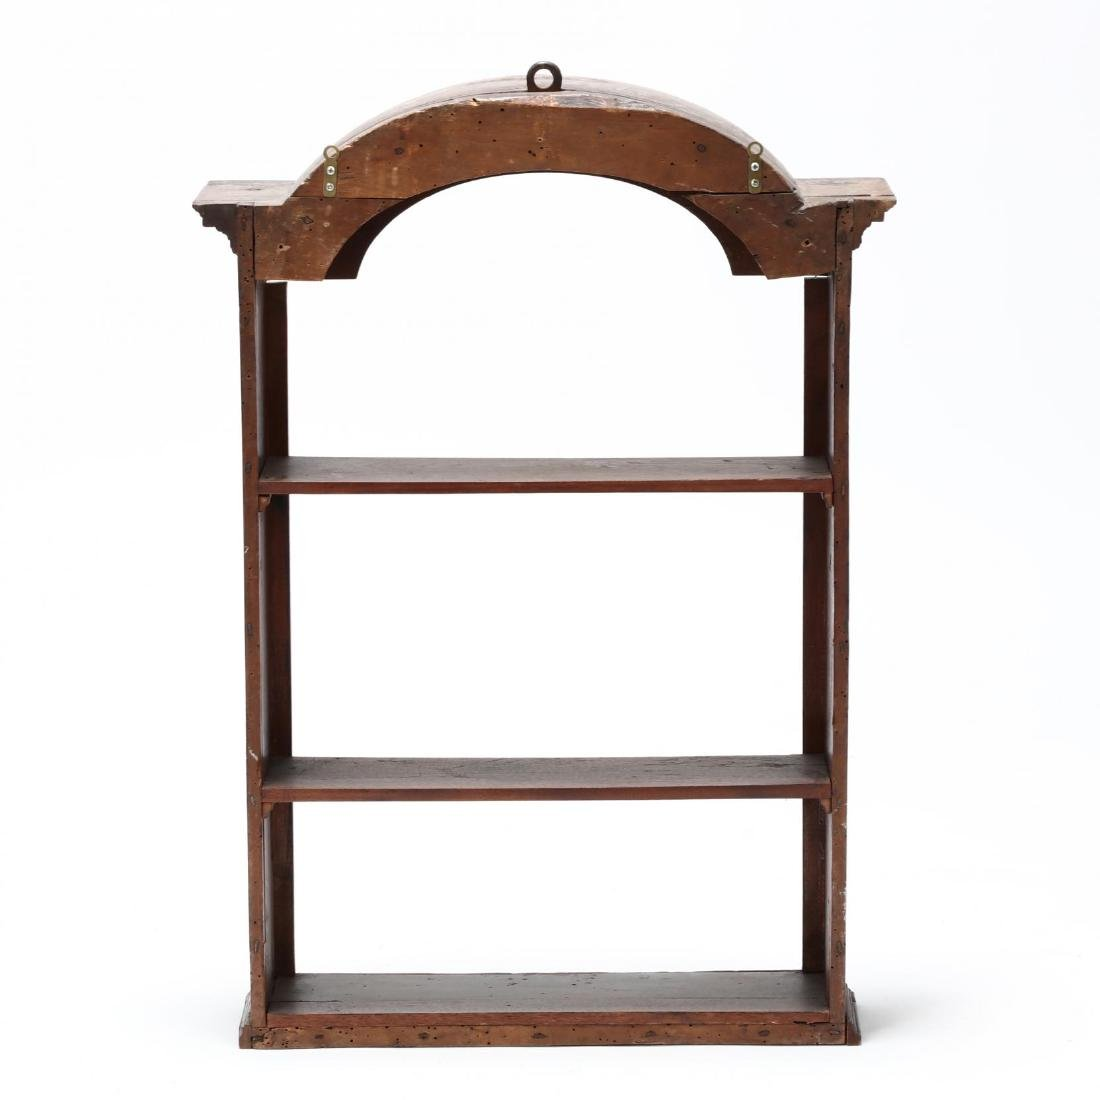 Antique Continental Hanging Display Cabinet - 3